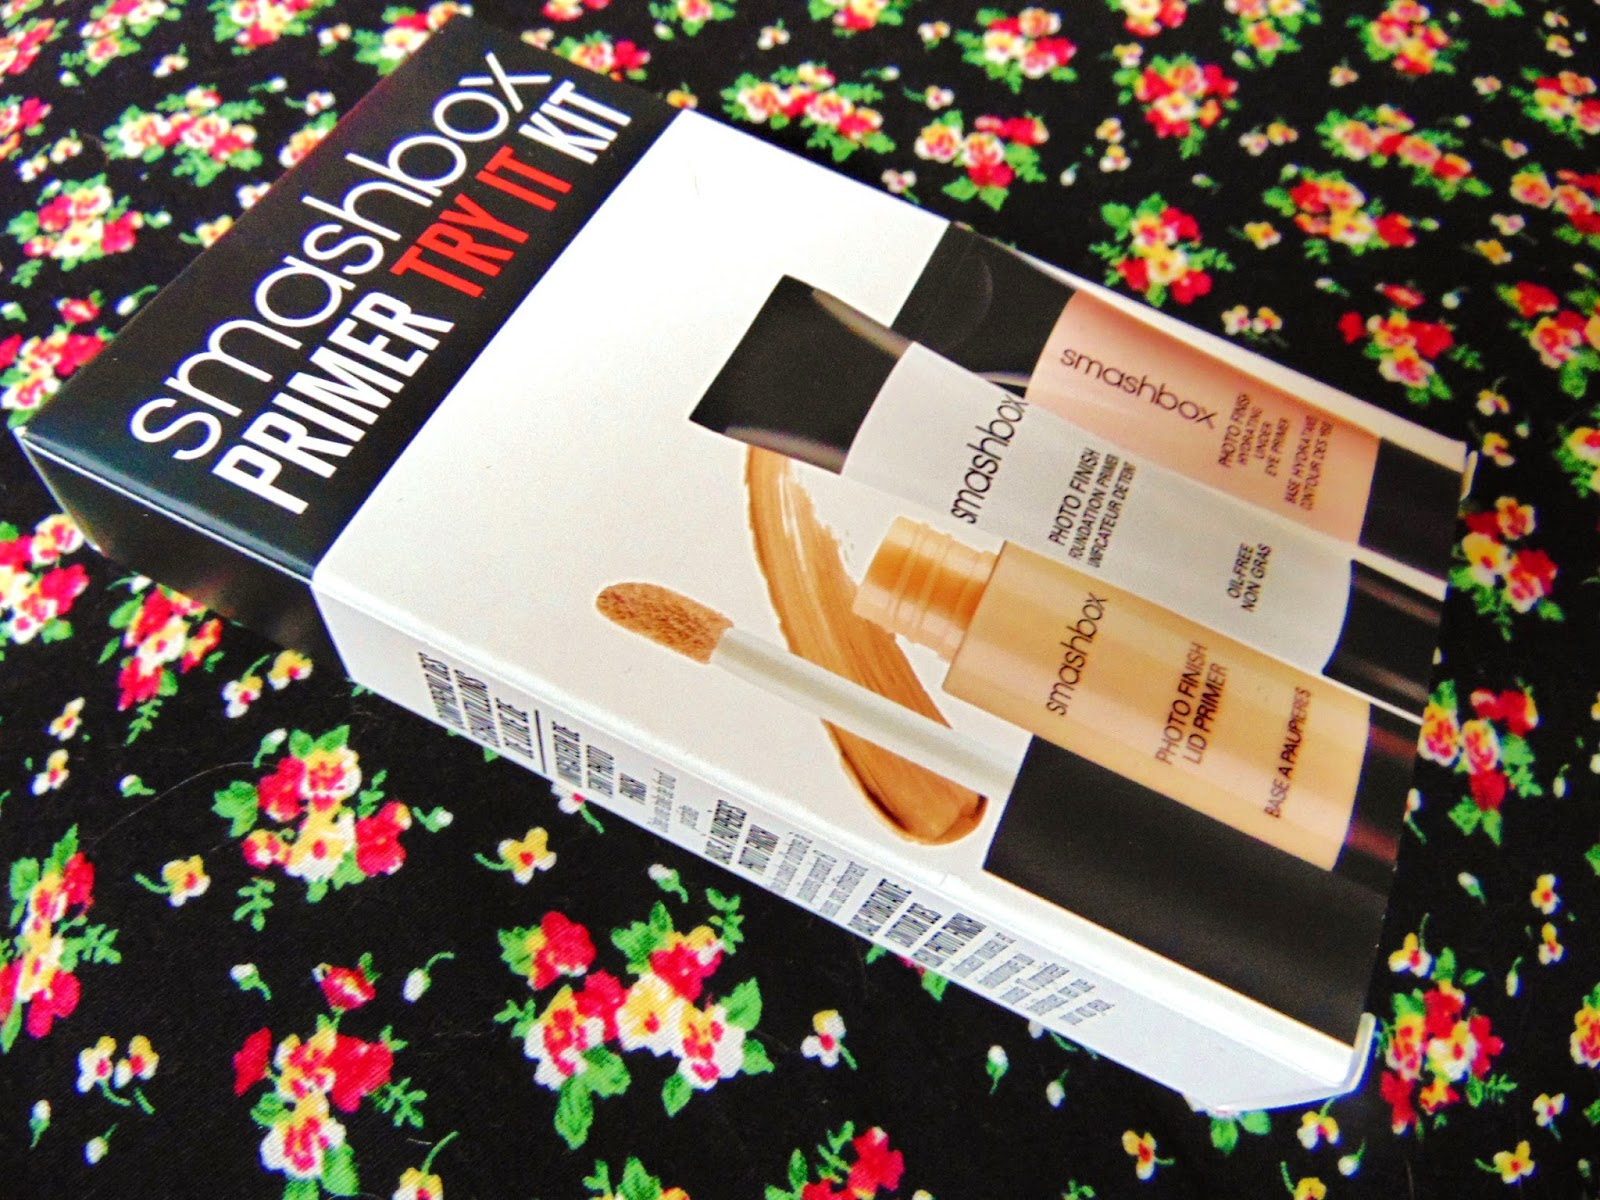 smashbox primer try it kit sample